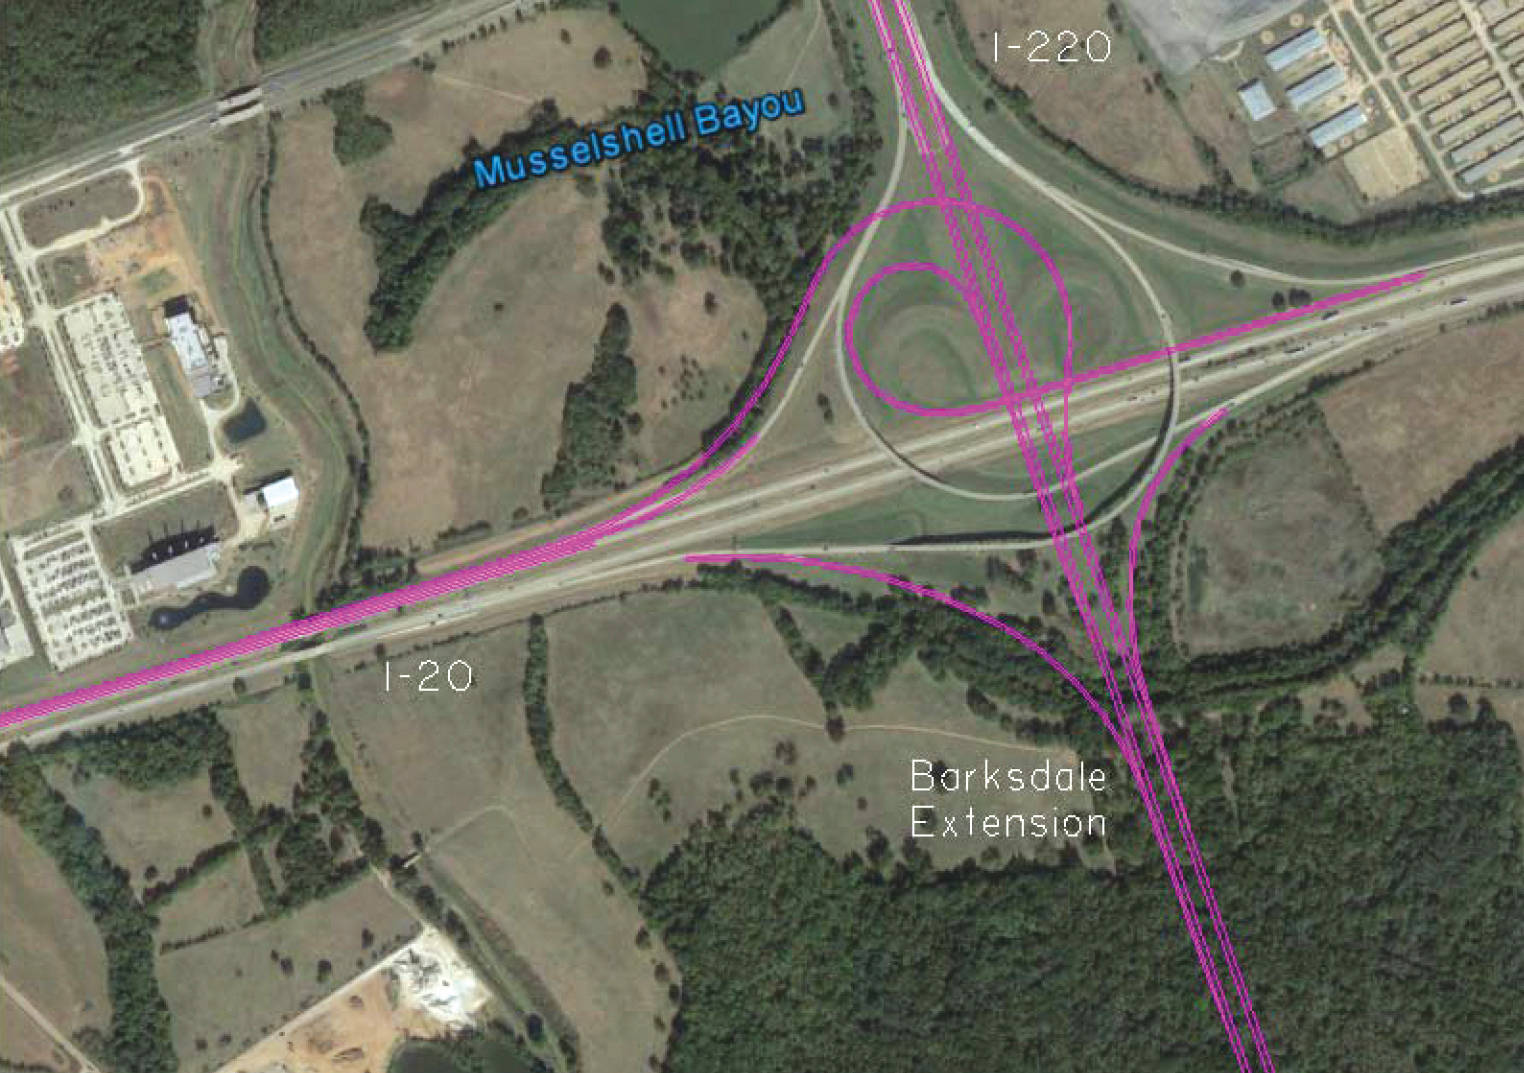 I 20 Louisiana Map.Overwhelming Response To Dotd S Design Build Barksdale Afb Access